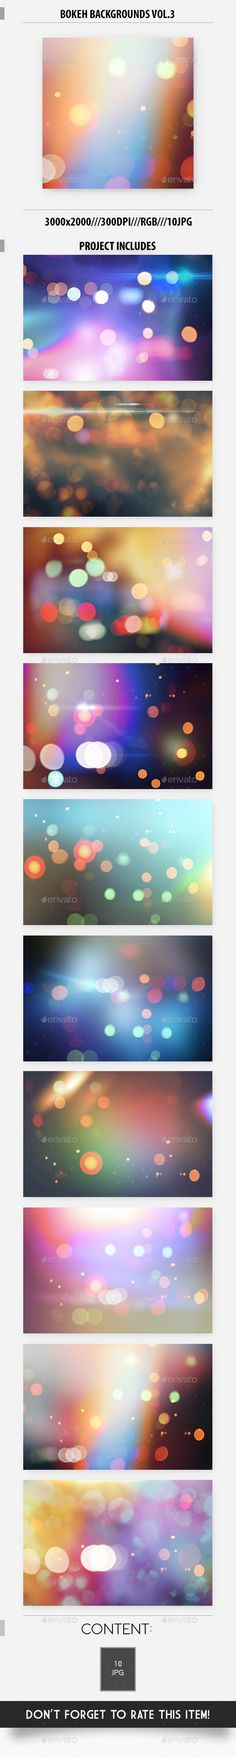 Bokeh Backgrounds Vol.3 - Abstract #Backgrounds Download here: https://graphicriver.net/item/bokeh-backgrounds-vol3/15418263?ref=alena994